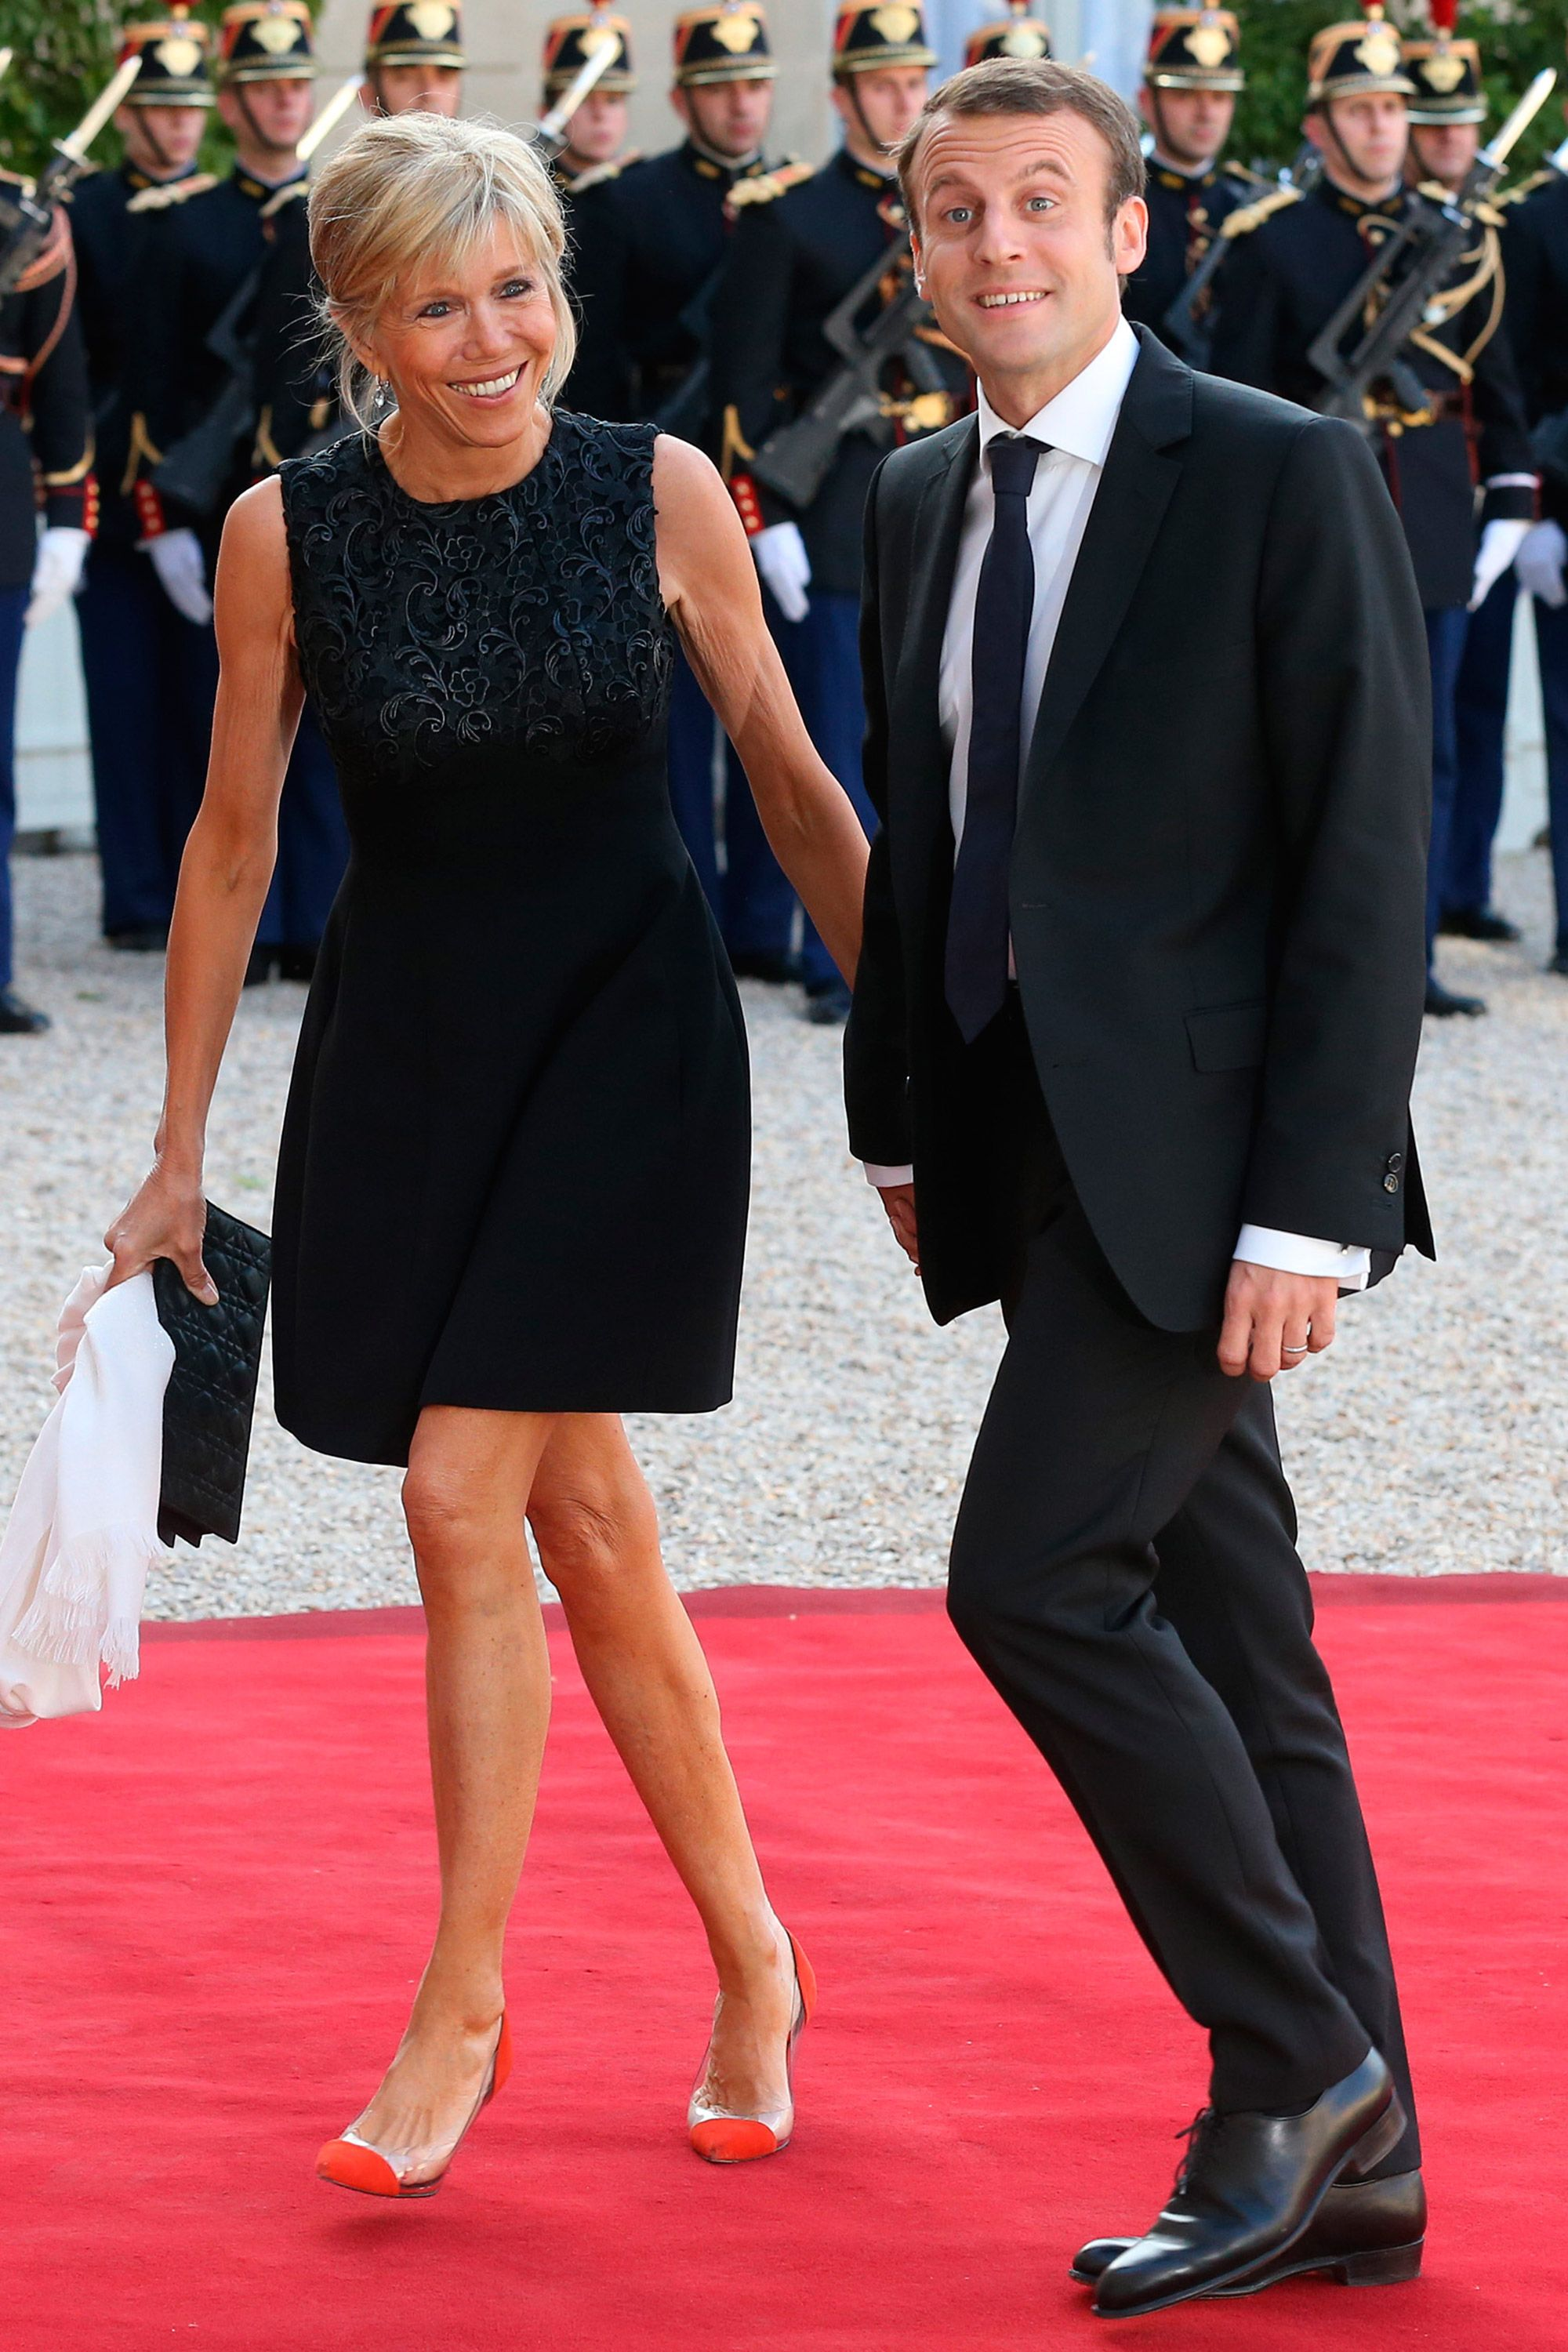 Emmanuel Macron On His Wife S Age Emmanuel Macron Addresses Brigitte Trogneaux S Age